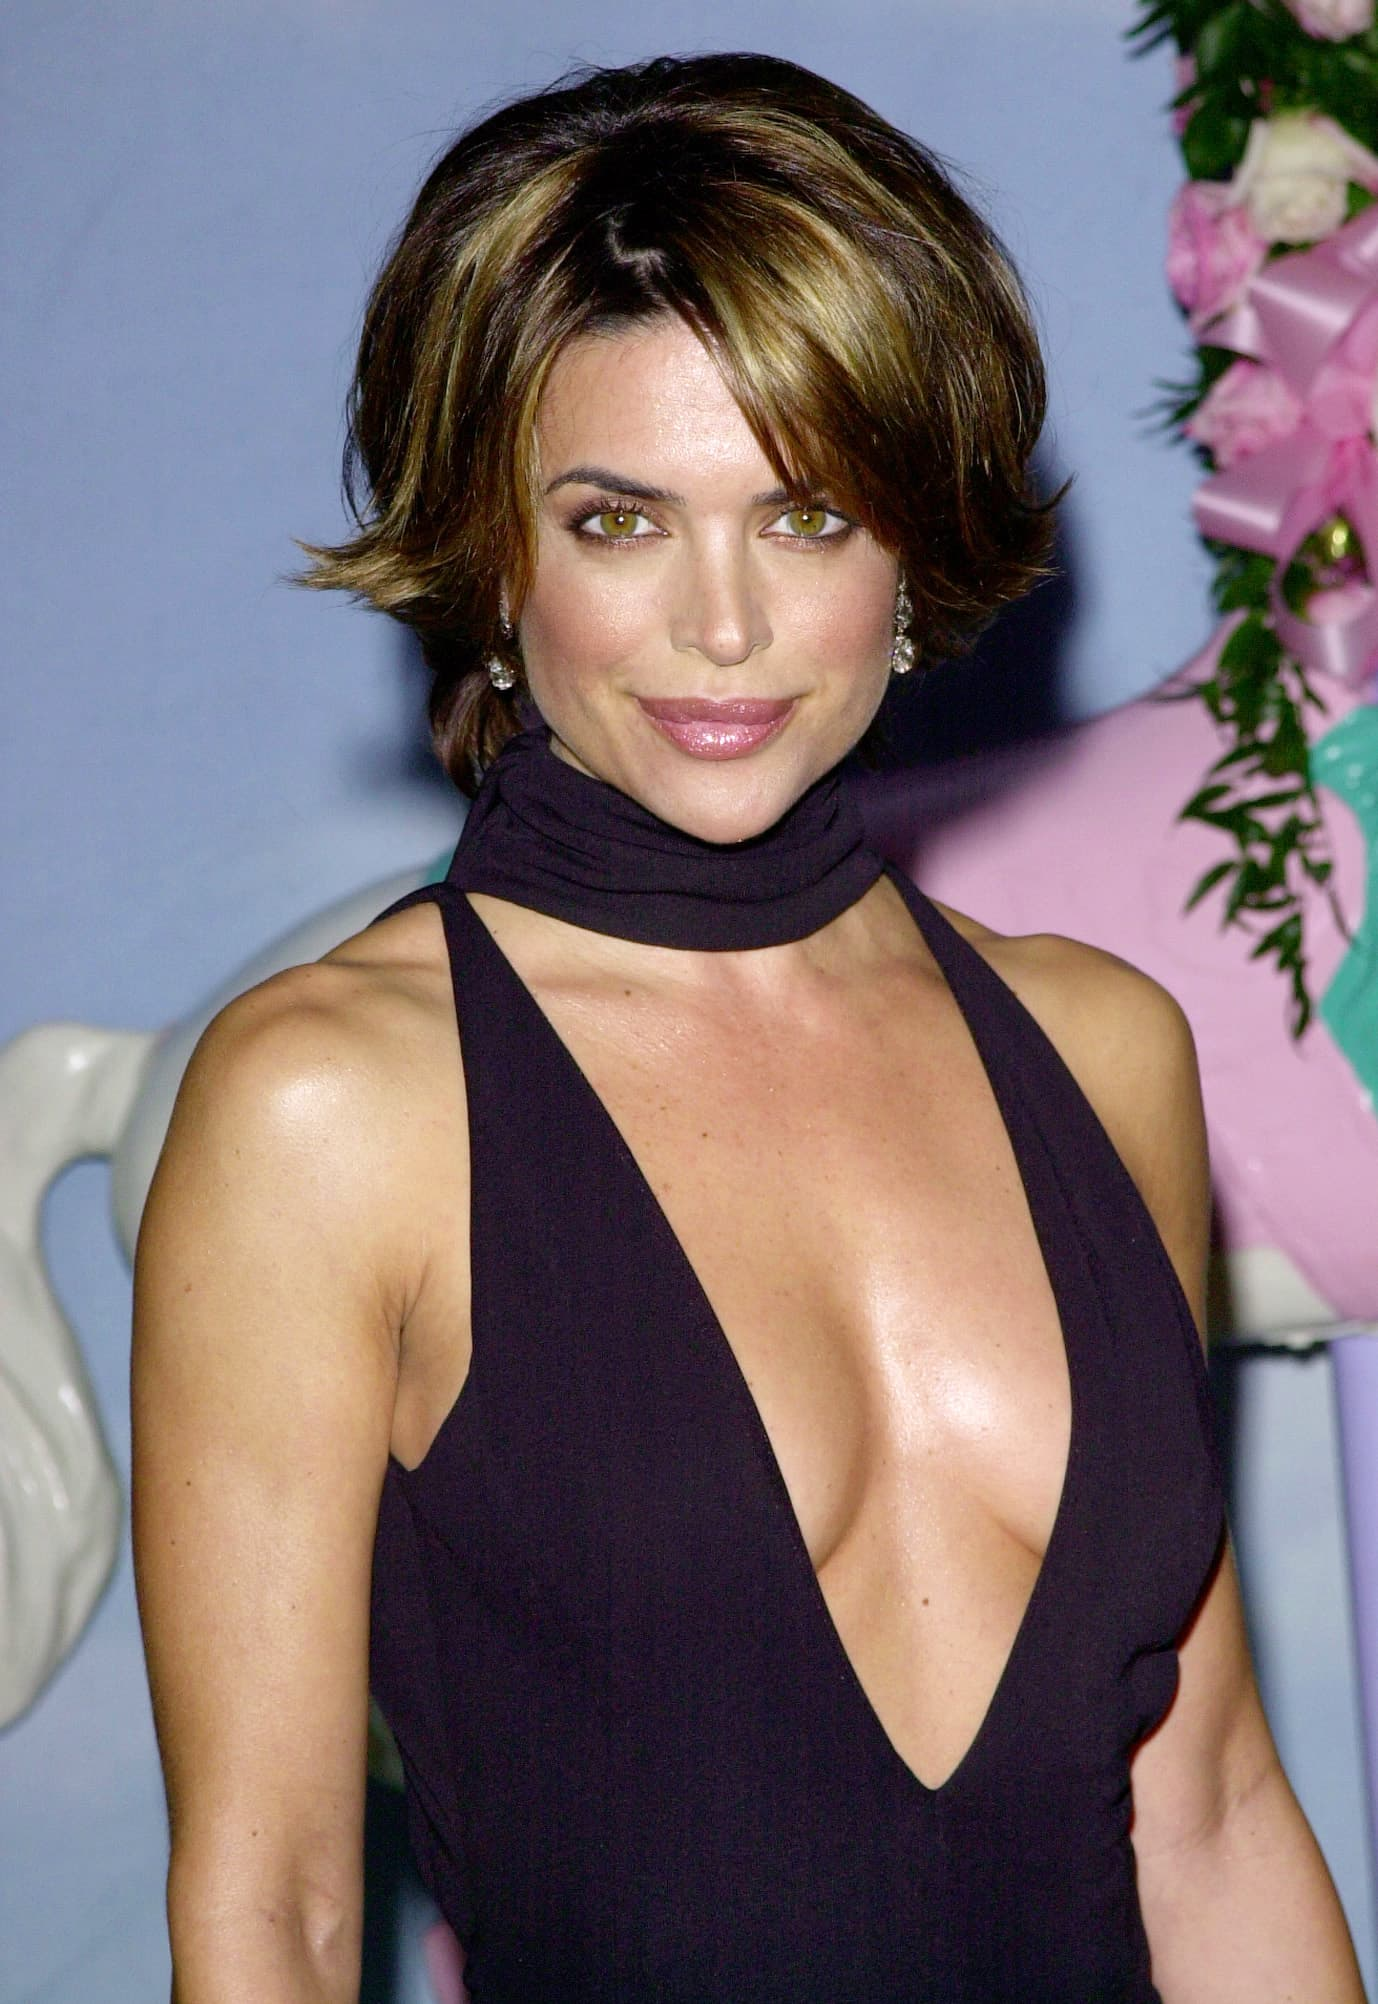 Lisa Rinna Before All The Plastic Surgery 1